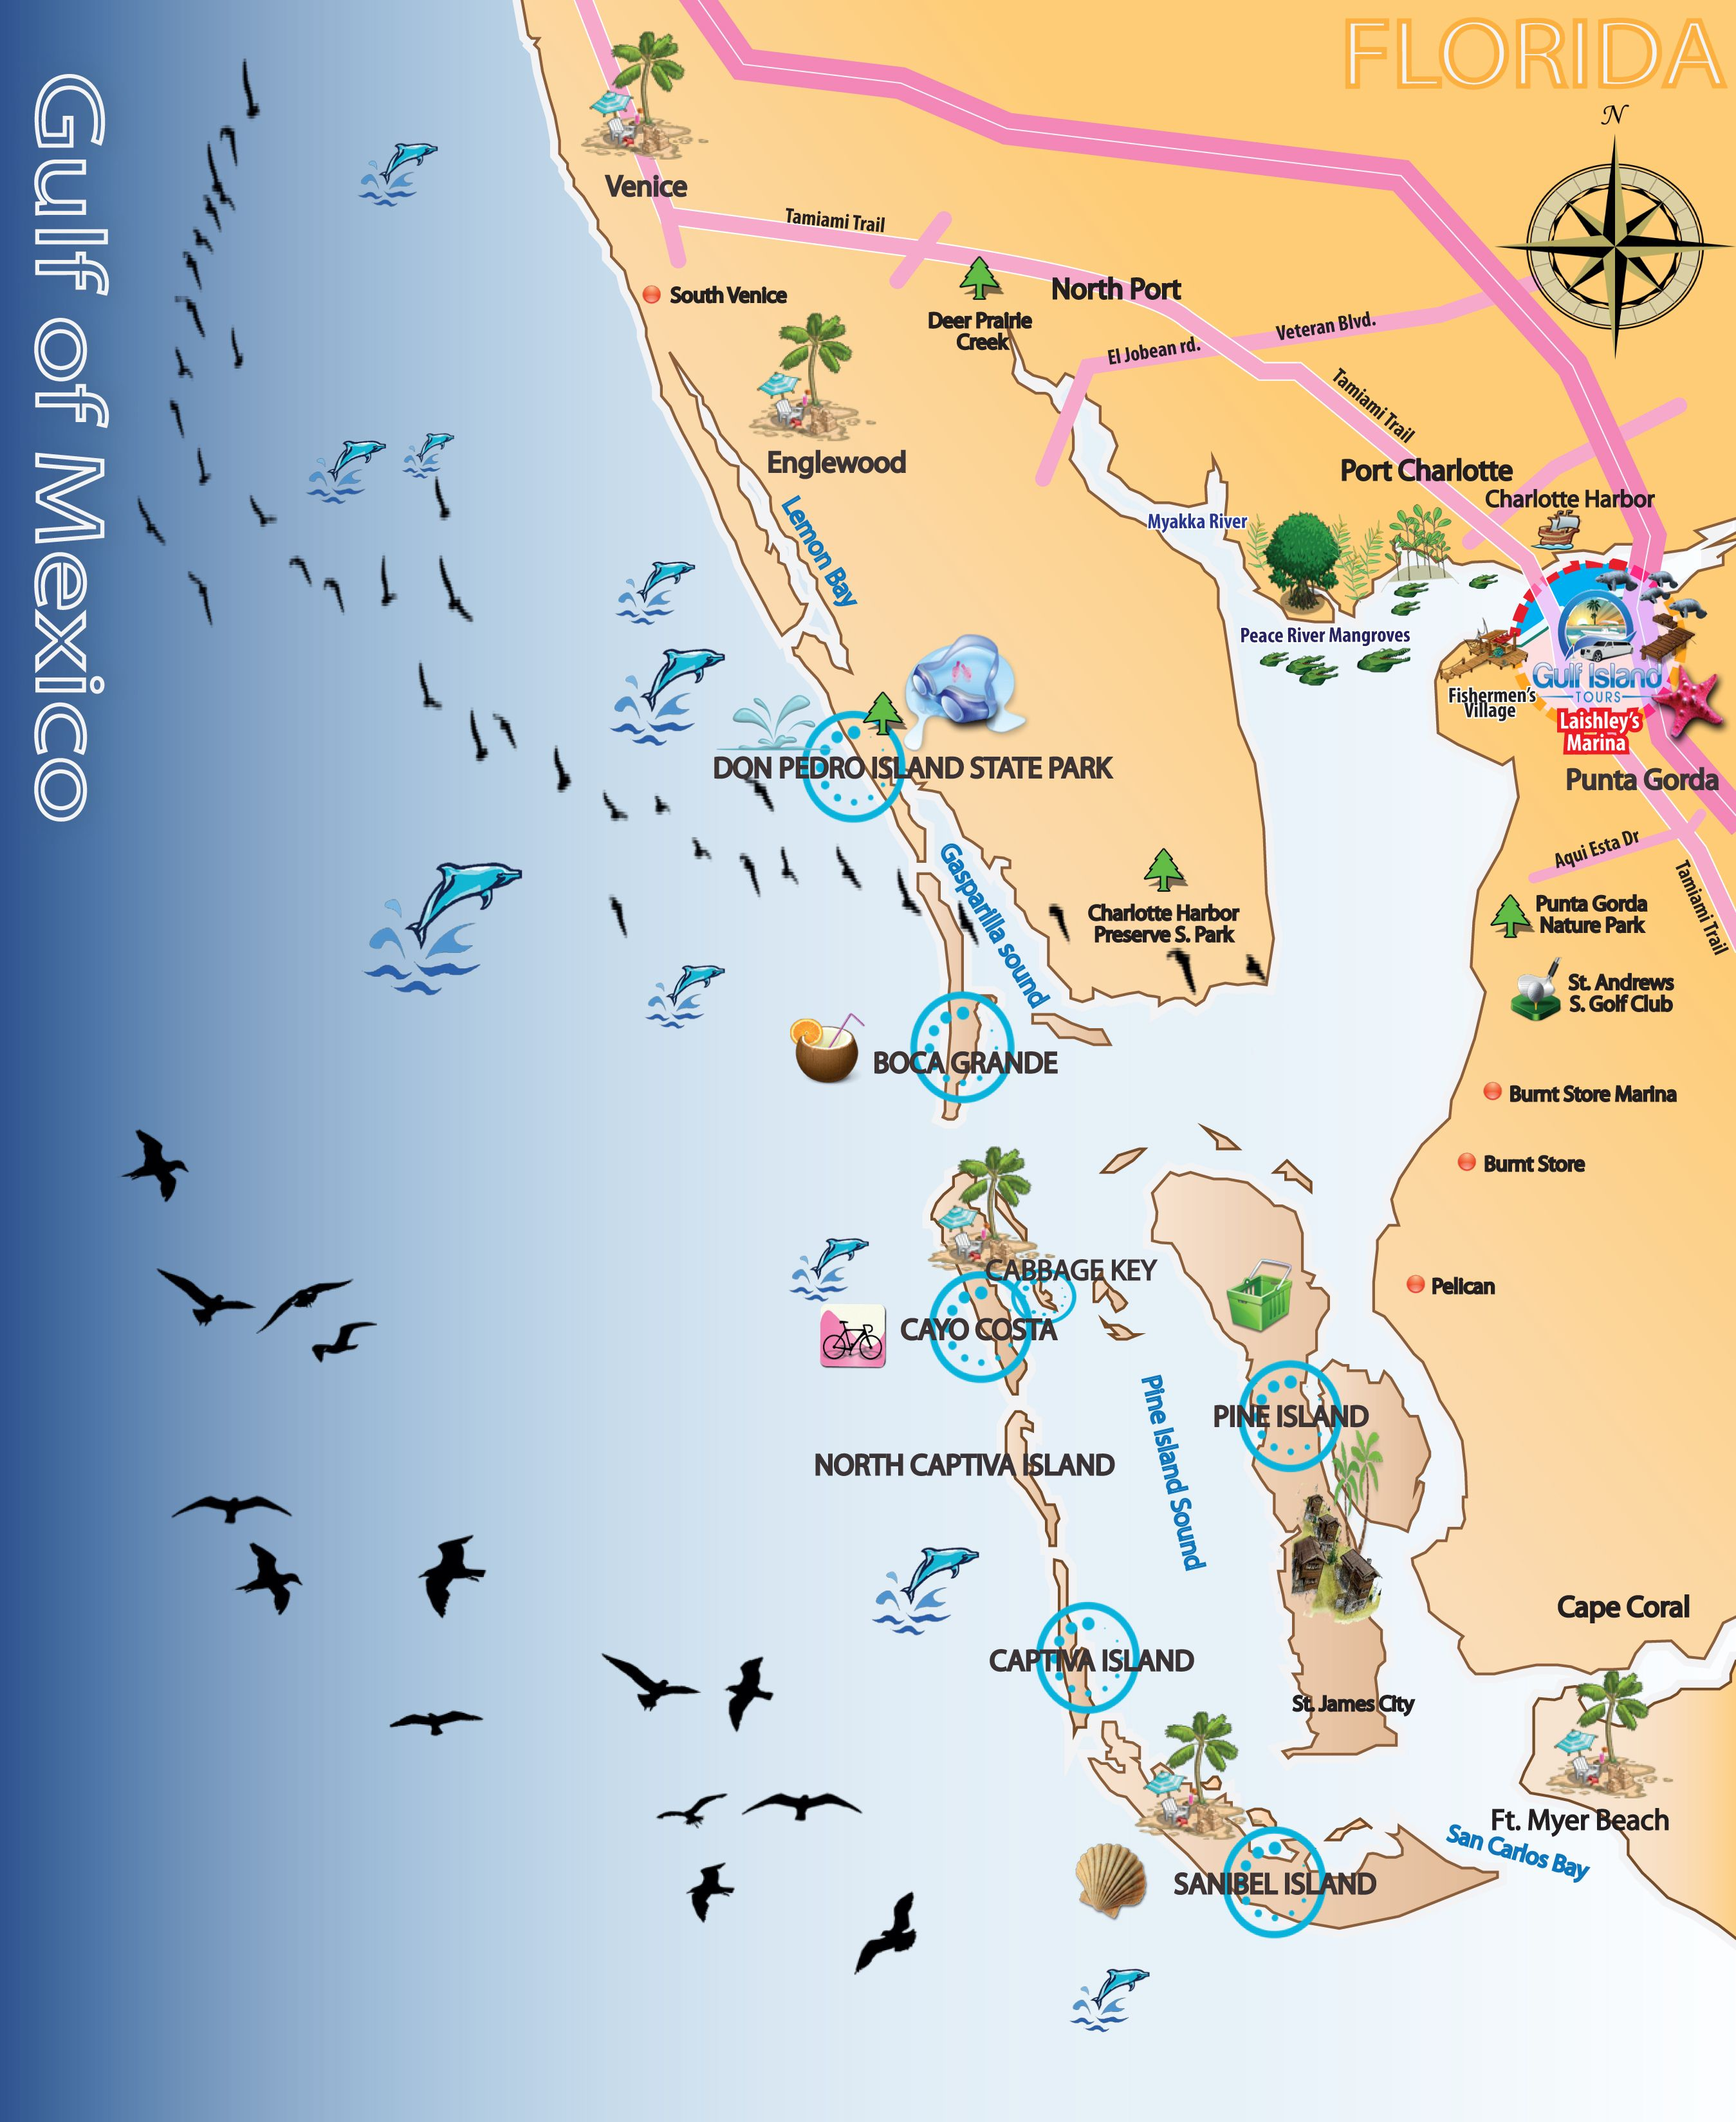 Map Out Your Next Vacation In The Florida Gulf Punta Gorda FL - Florida map port charlotte